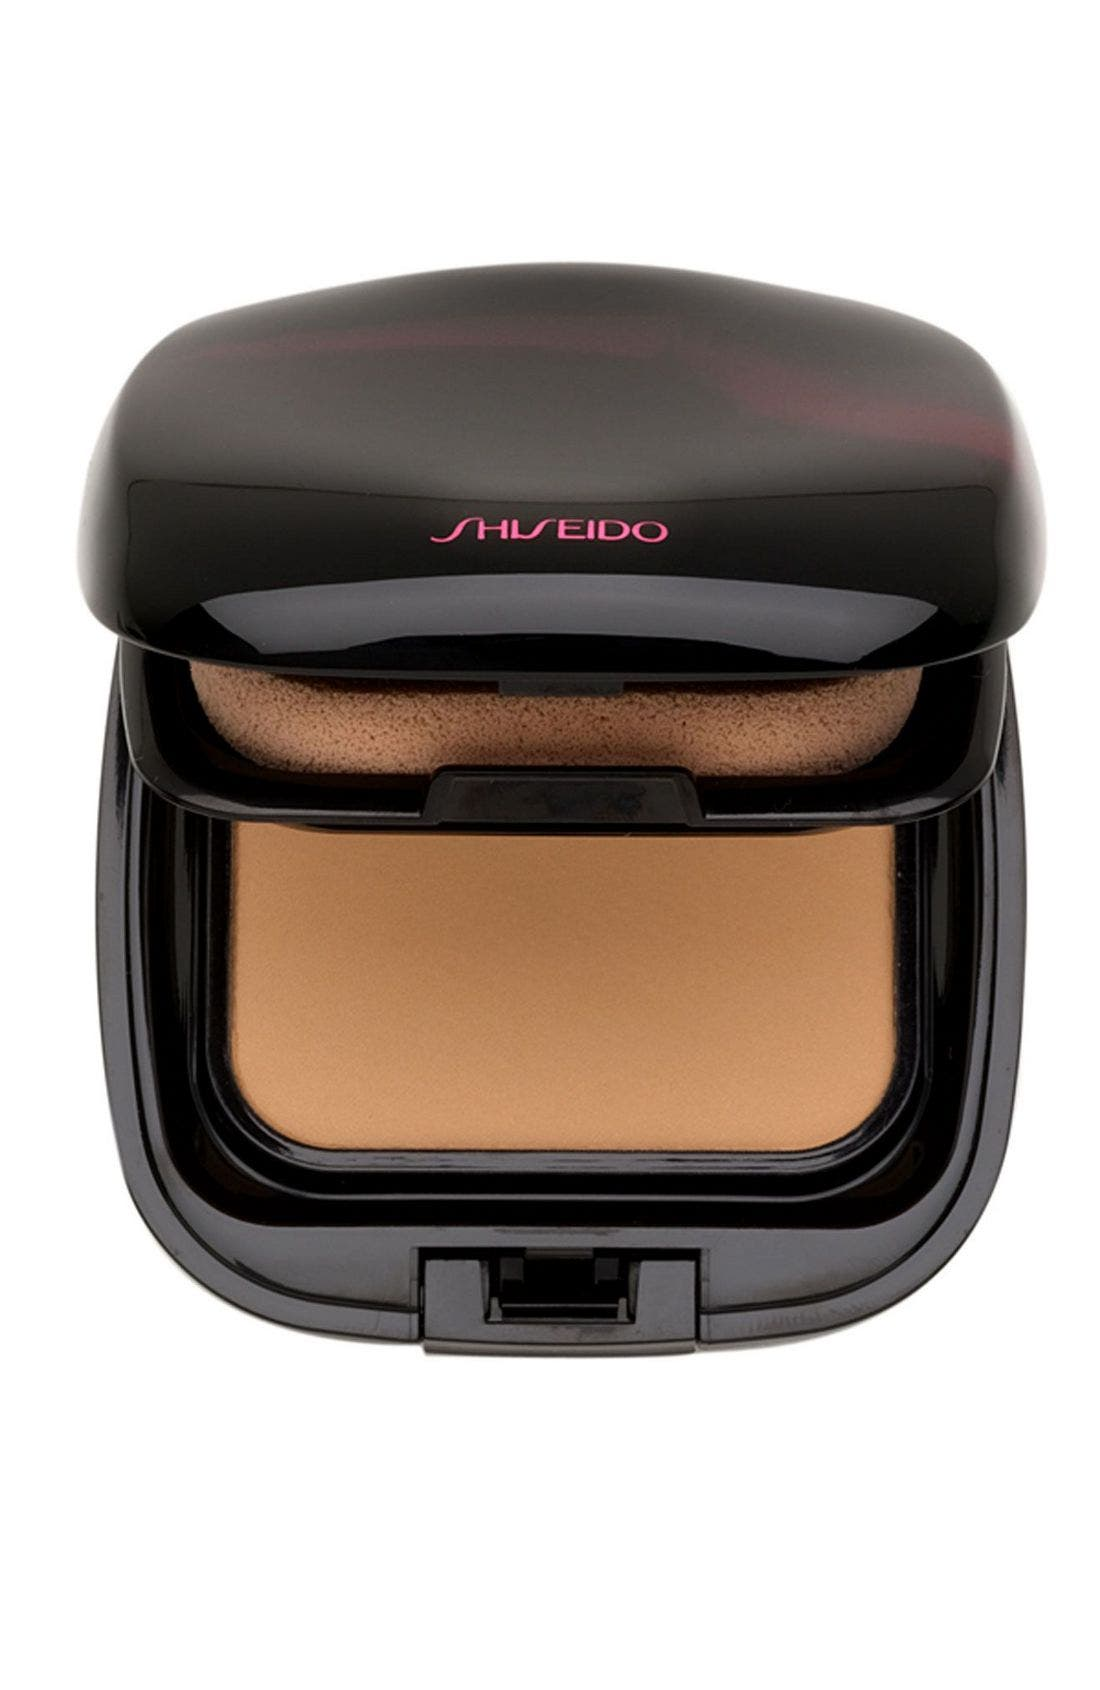 'The Makeup' Perfect Smoothing Compact Foundation Refill,                             Main thumbnail 1, color,                             I00